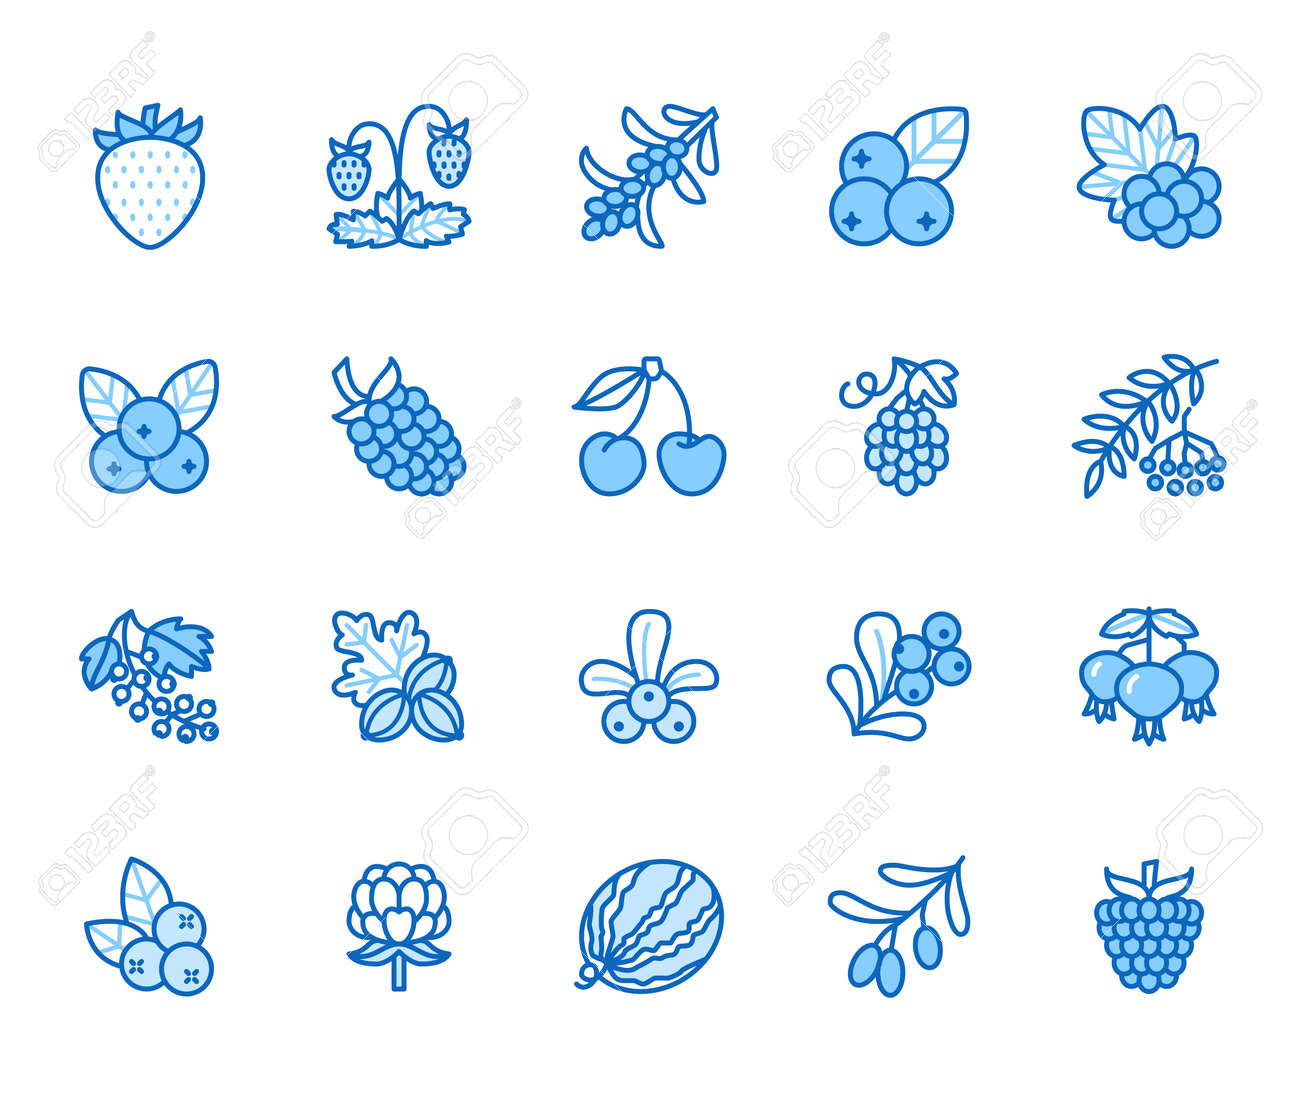 Forest berries flat line icons - blueberry, cranberry, raspberry, strawberry, cherry, rowan. Watermelon, grapes, olives illustrations for natural food store. Blue color, Editable Stroke. - 162486392